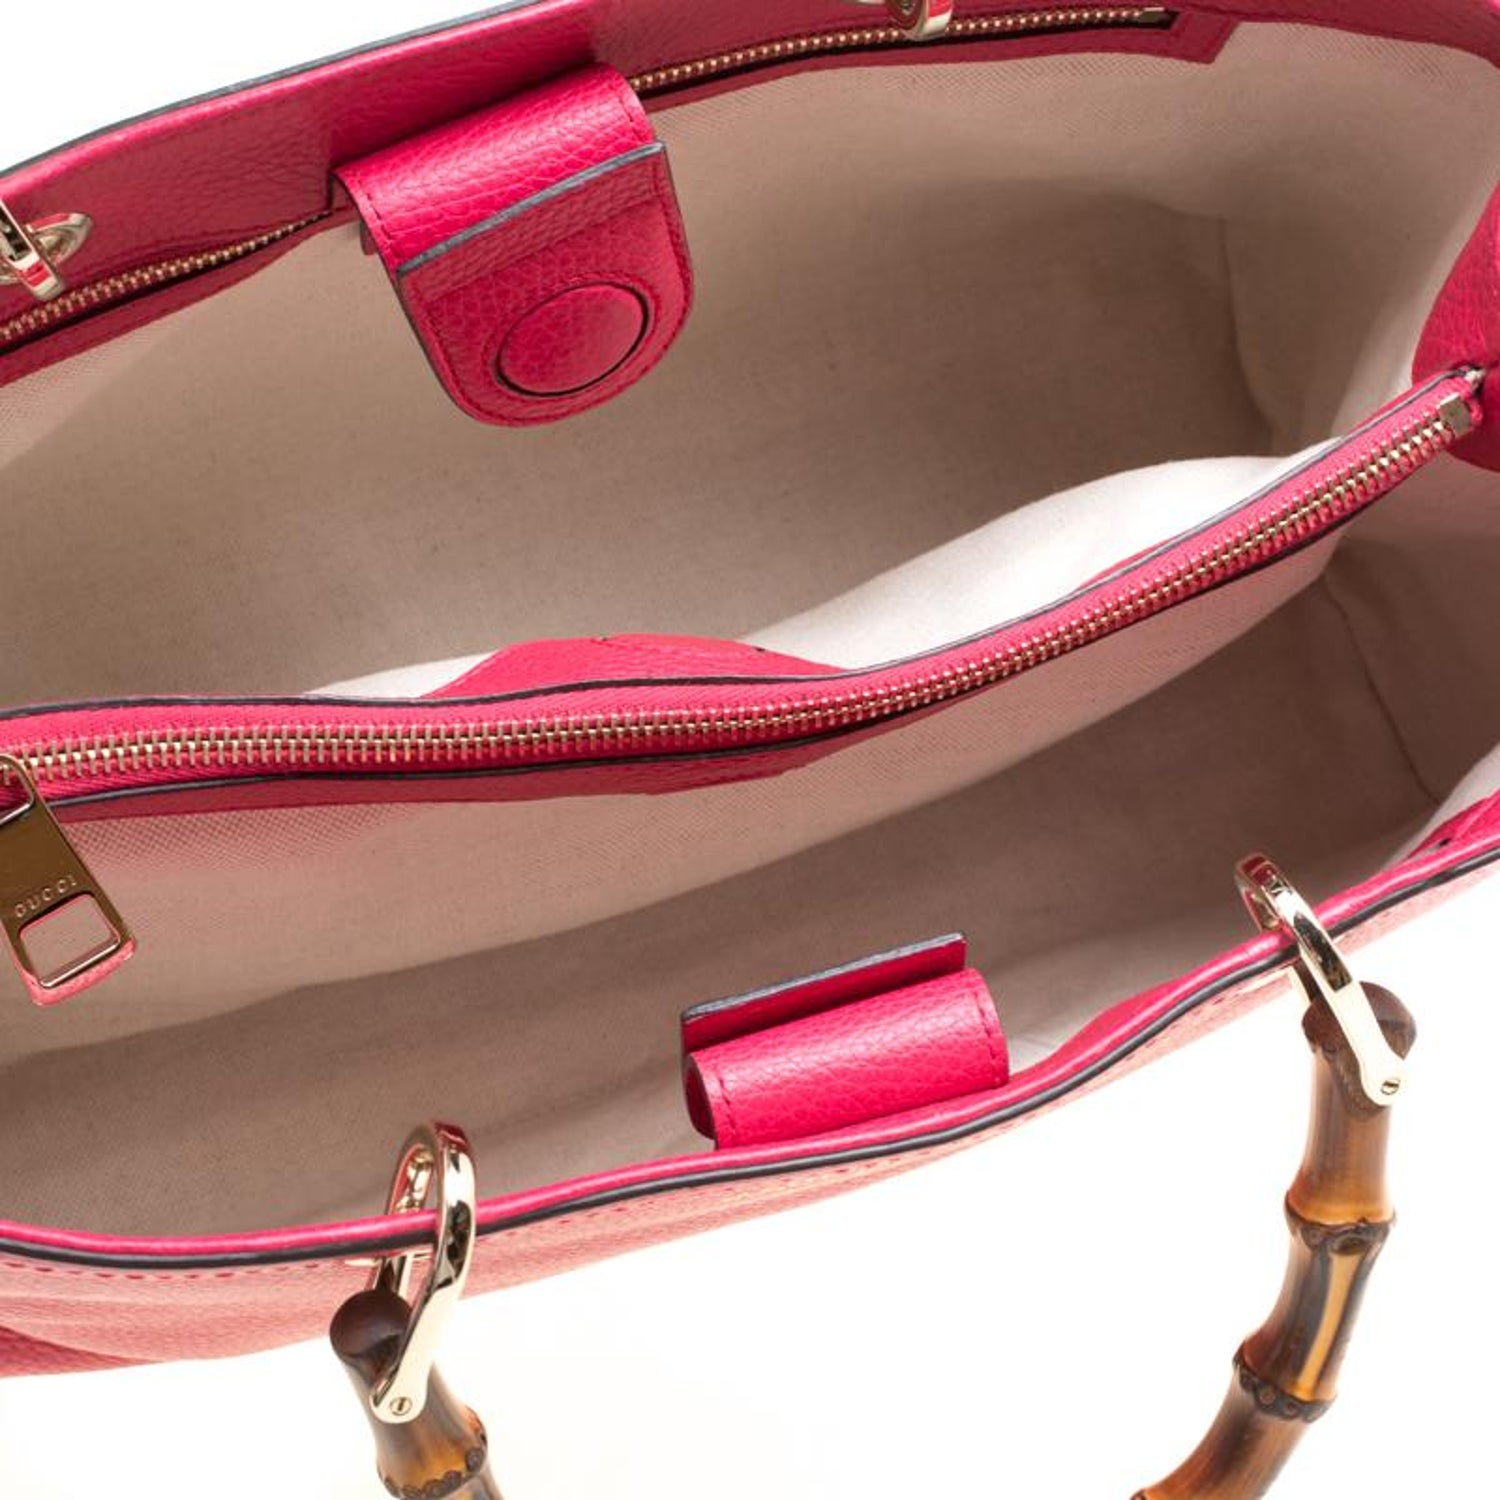 028808a51d Gucci Fuchsia/Orange Leather Medium Exclusive Bamboo Shopper Top Handle Bag  For Sale at 1stdibs